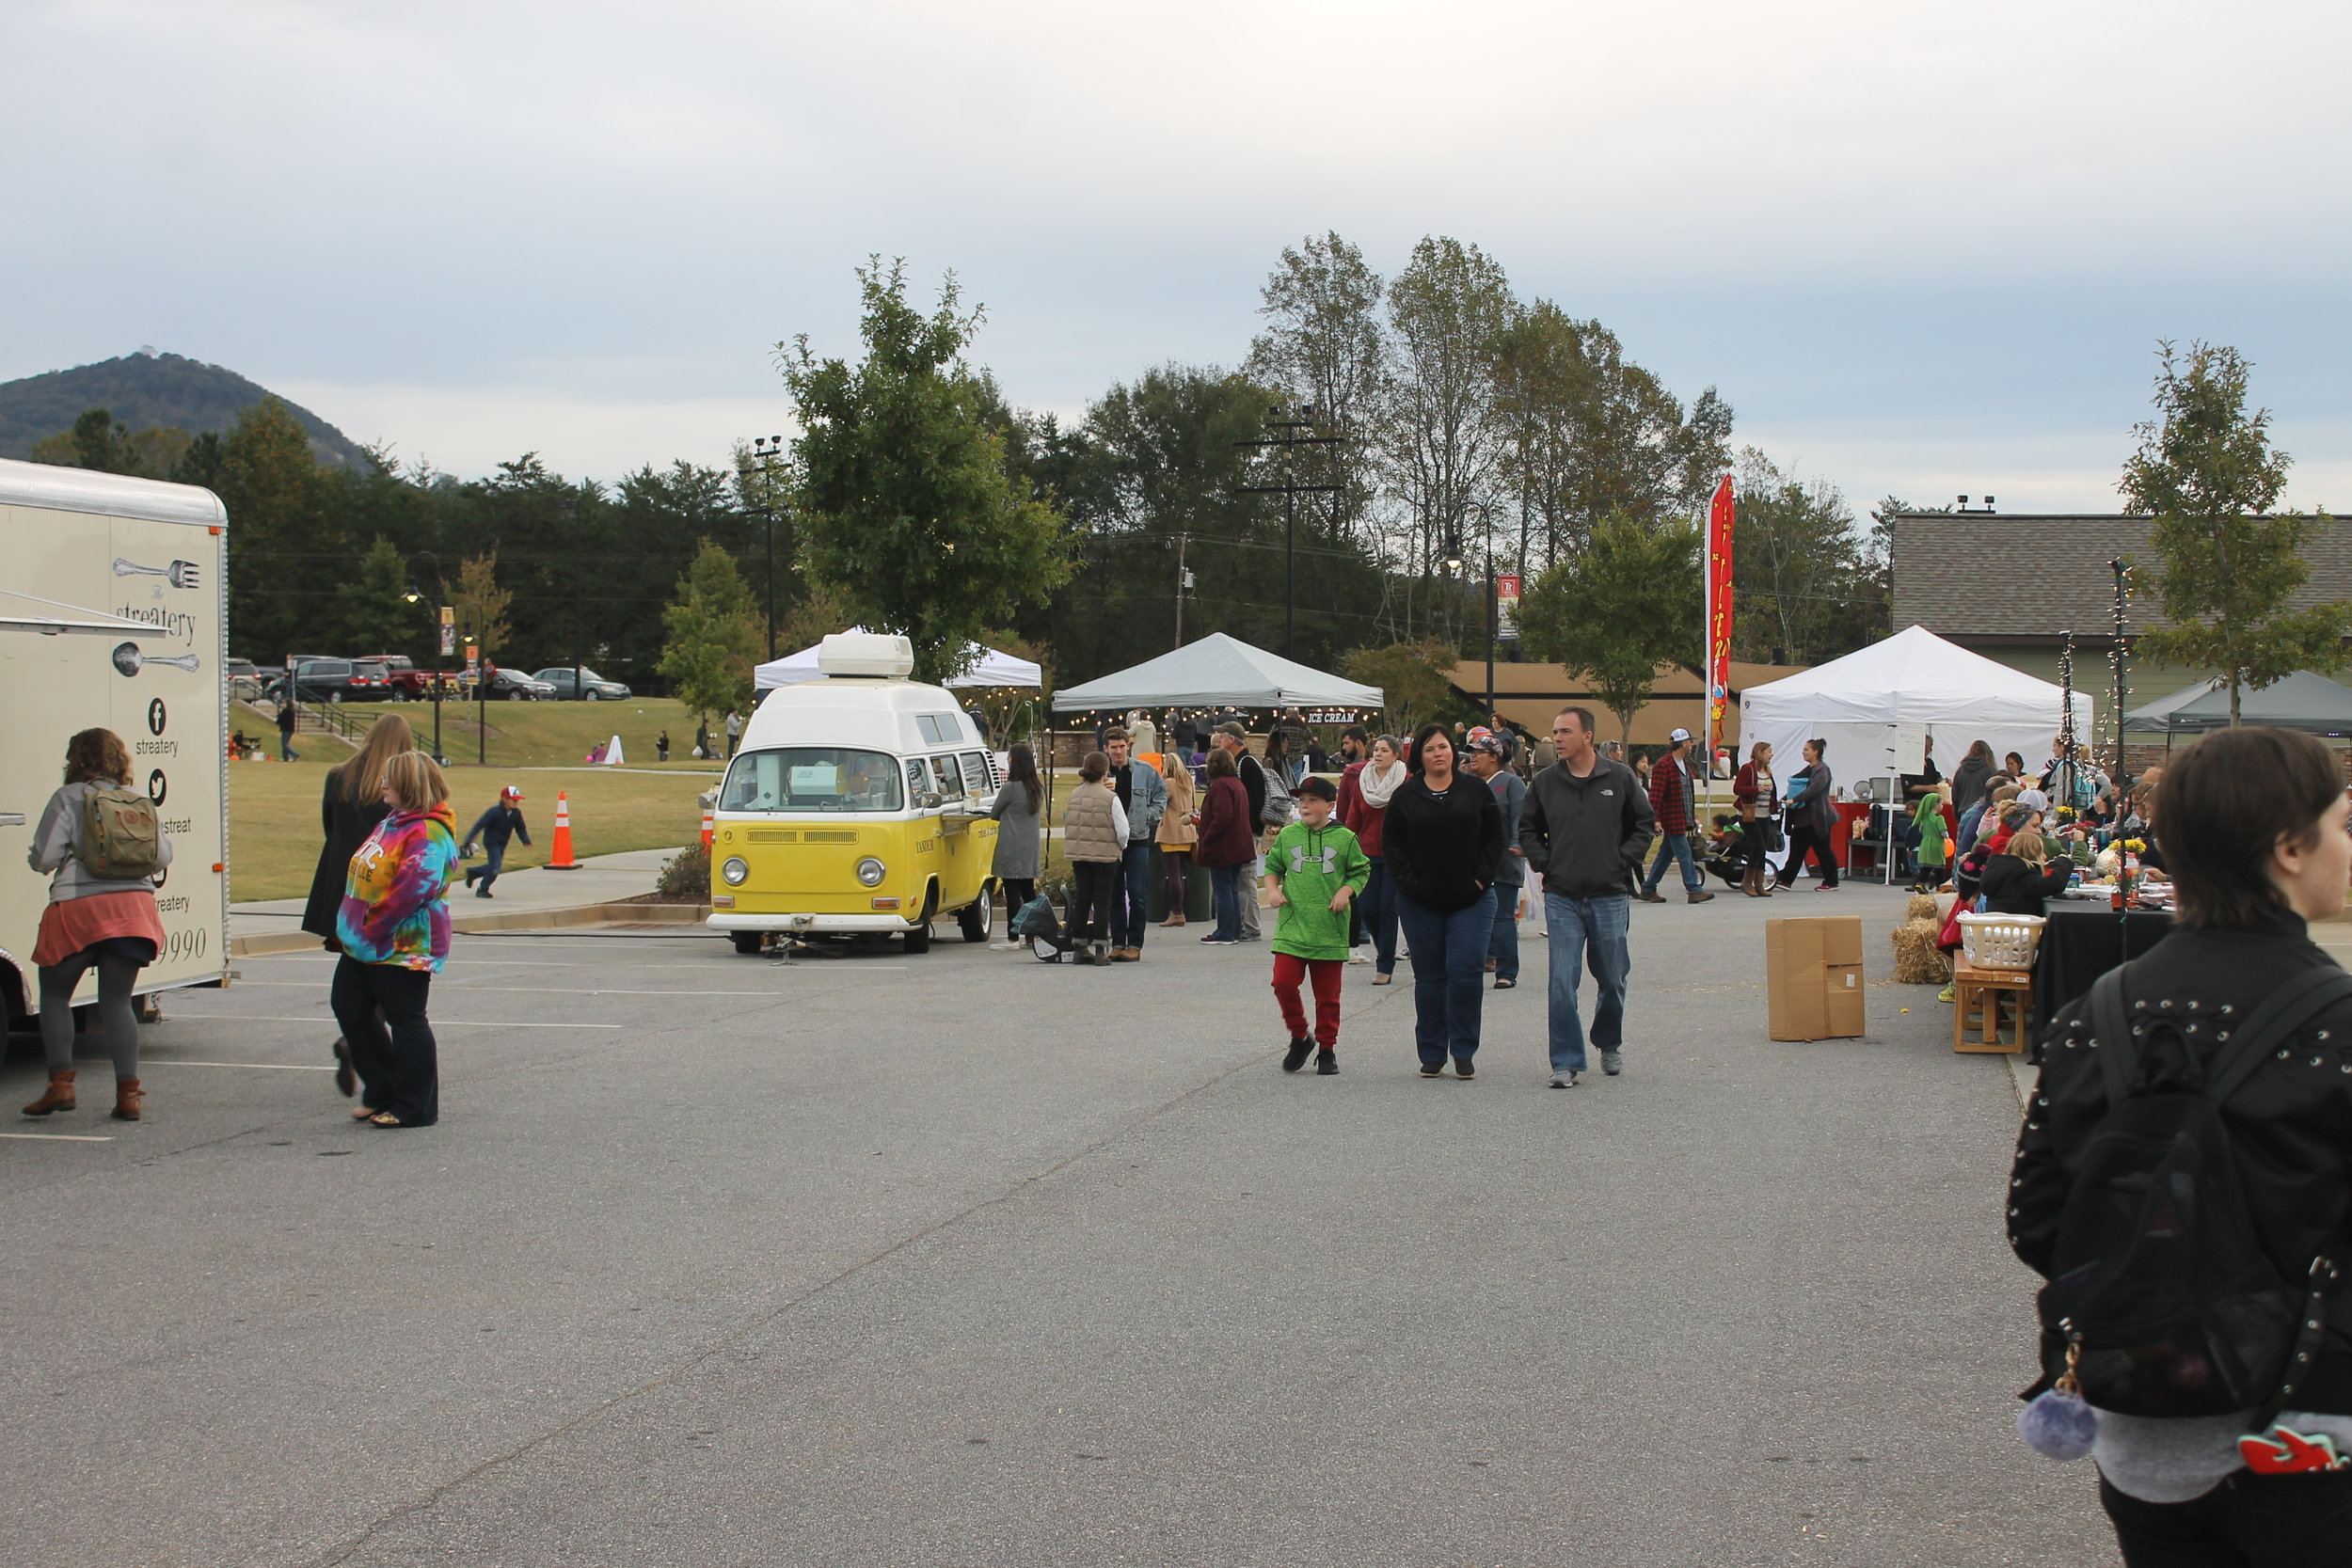 Travelers Rest, SC commenced their annual fall bluegrass and harvest market on Oct. 25.